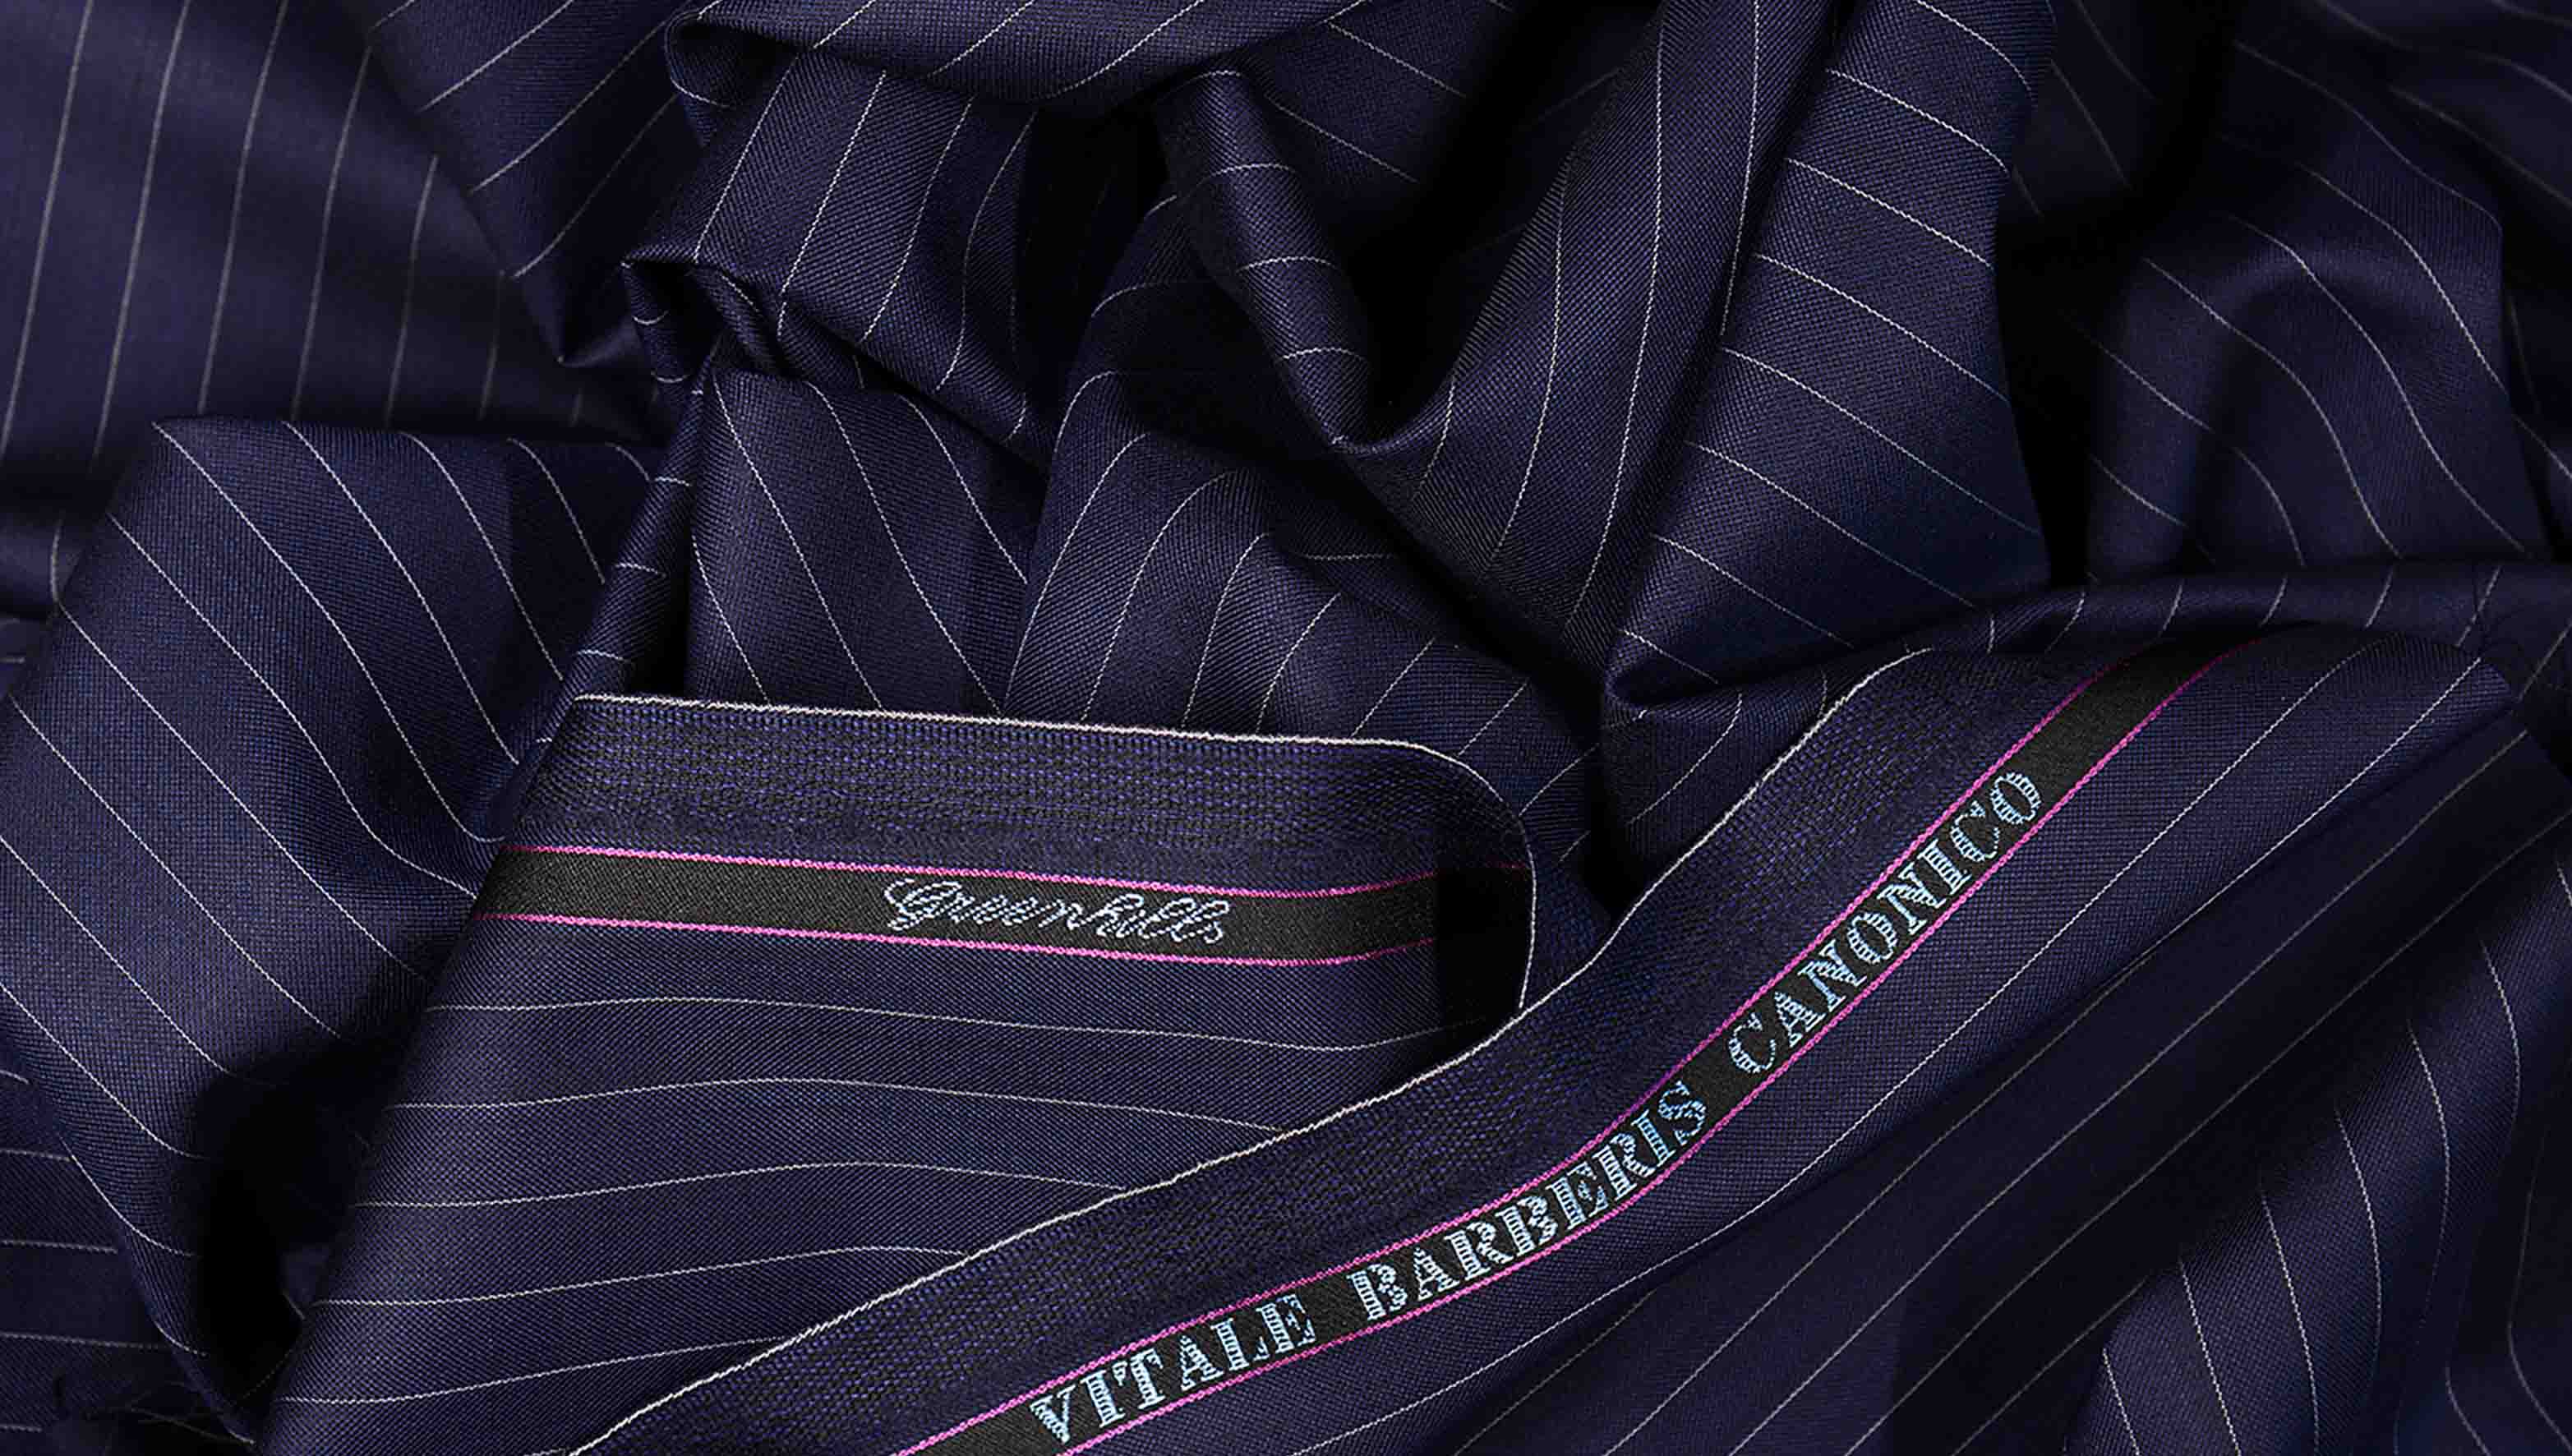 Worsted Wool Suiting Fabric Guide Gentlemans Gazette Ply Conversion Tables Greenhills Pin Stripe Blue